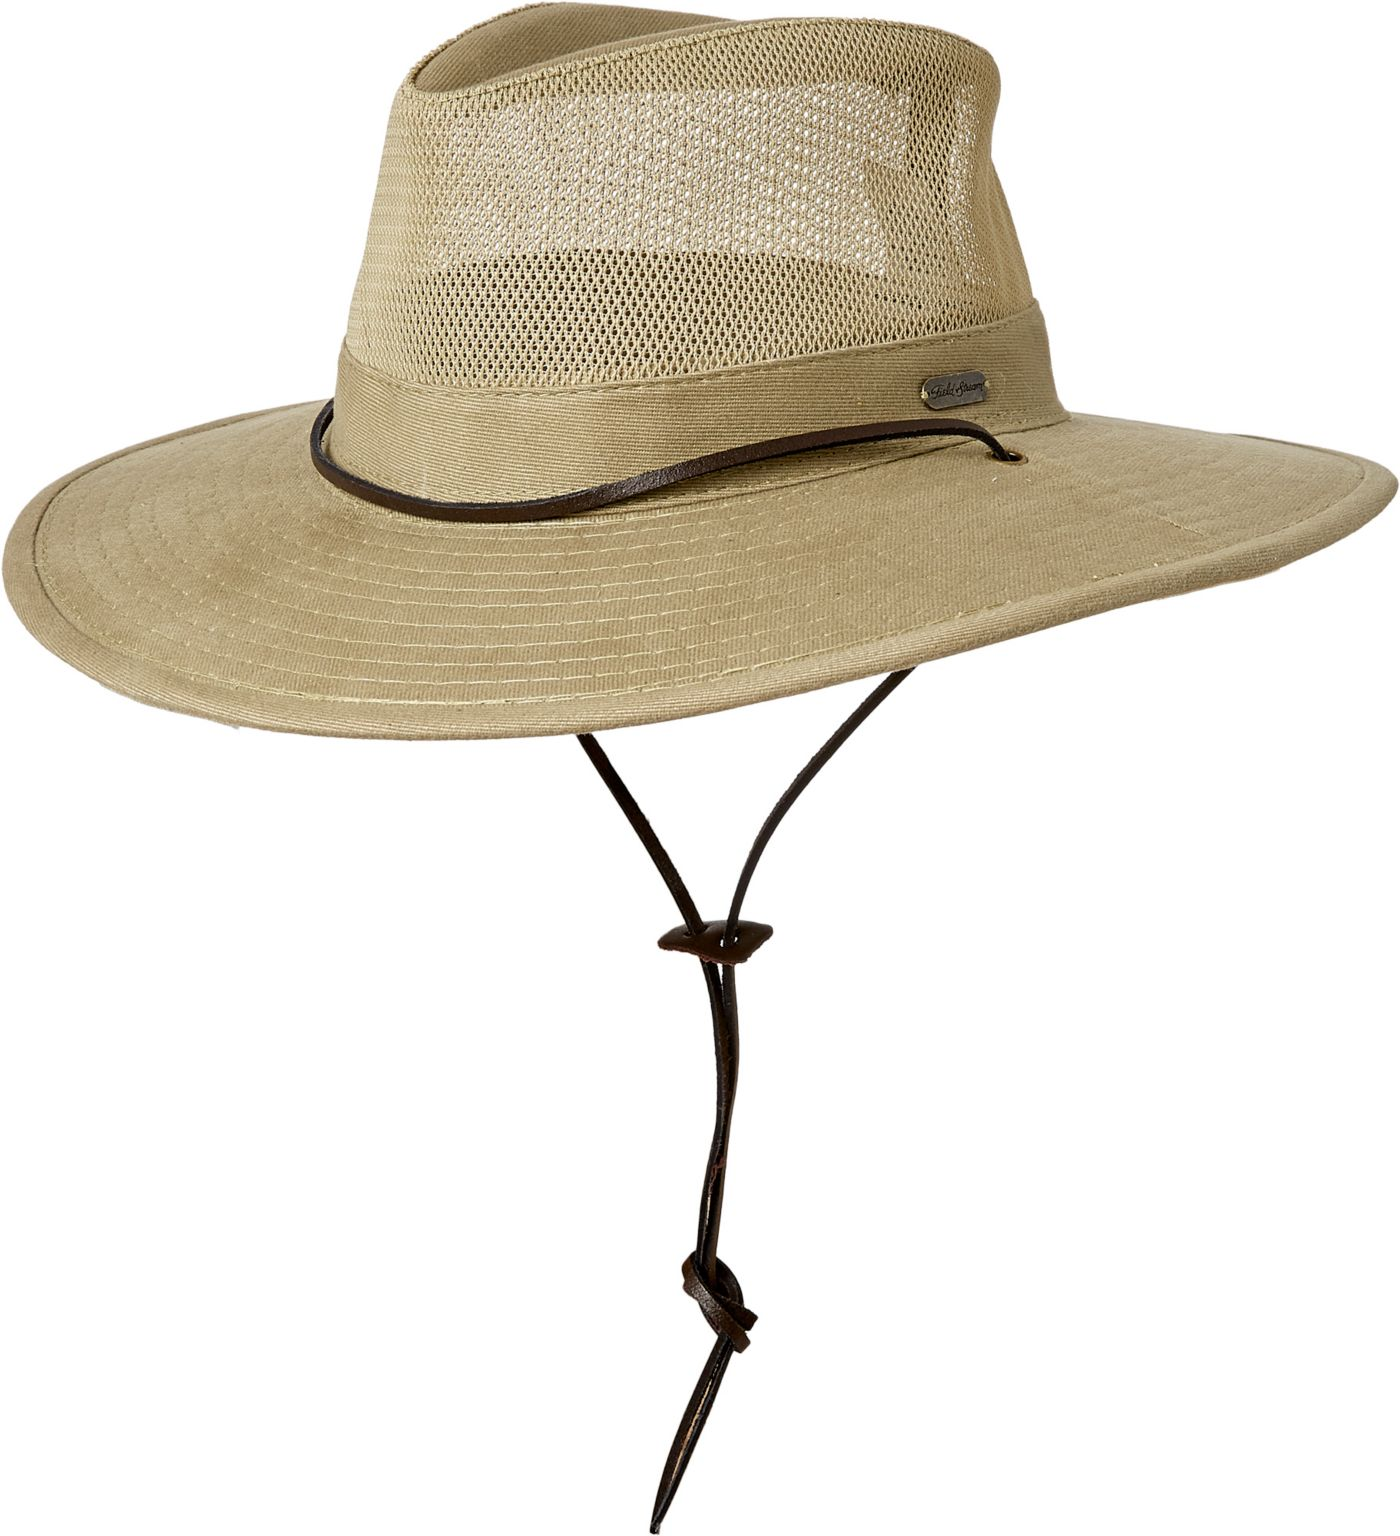 Field & Stream Men's Mesh Safari Hat